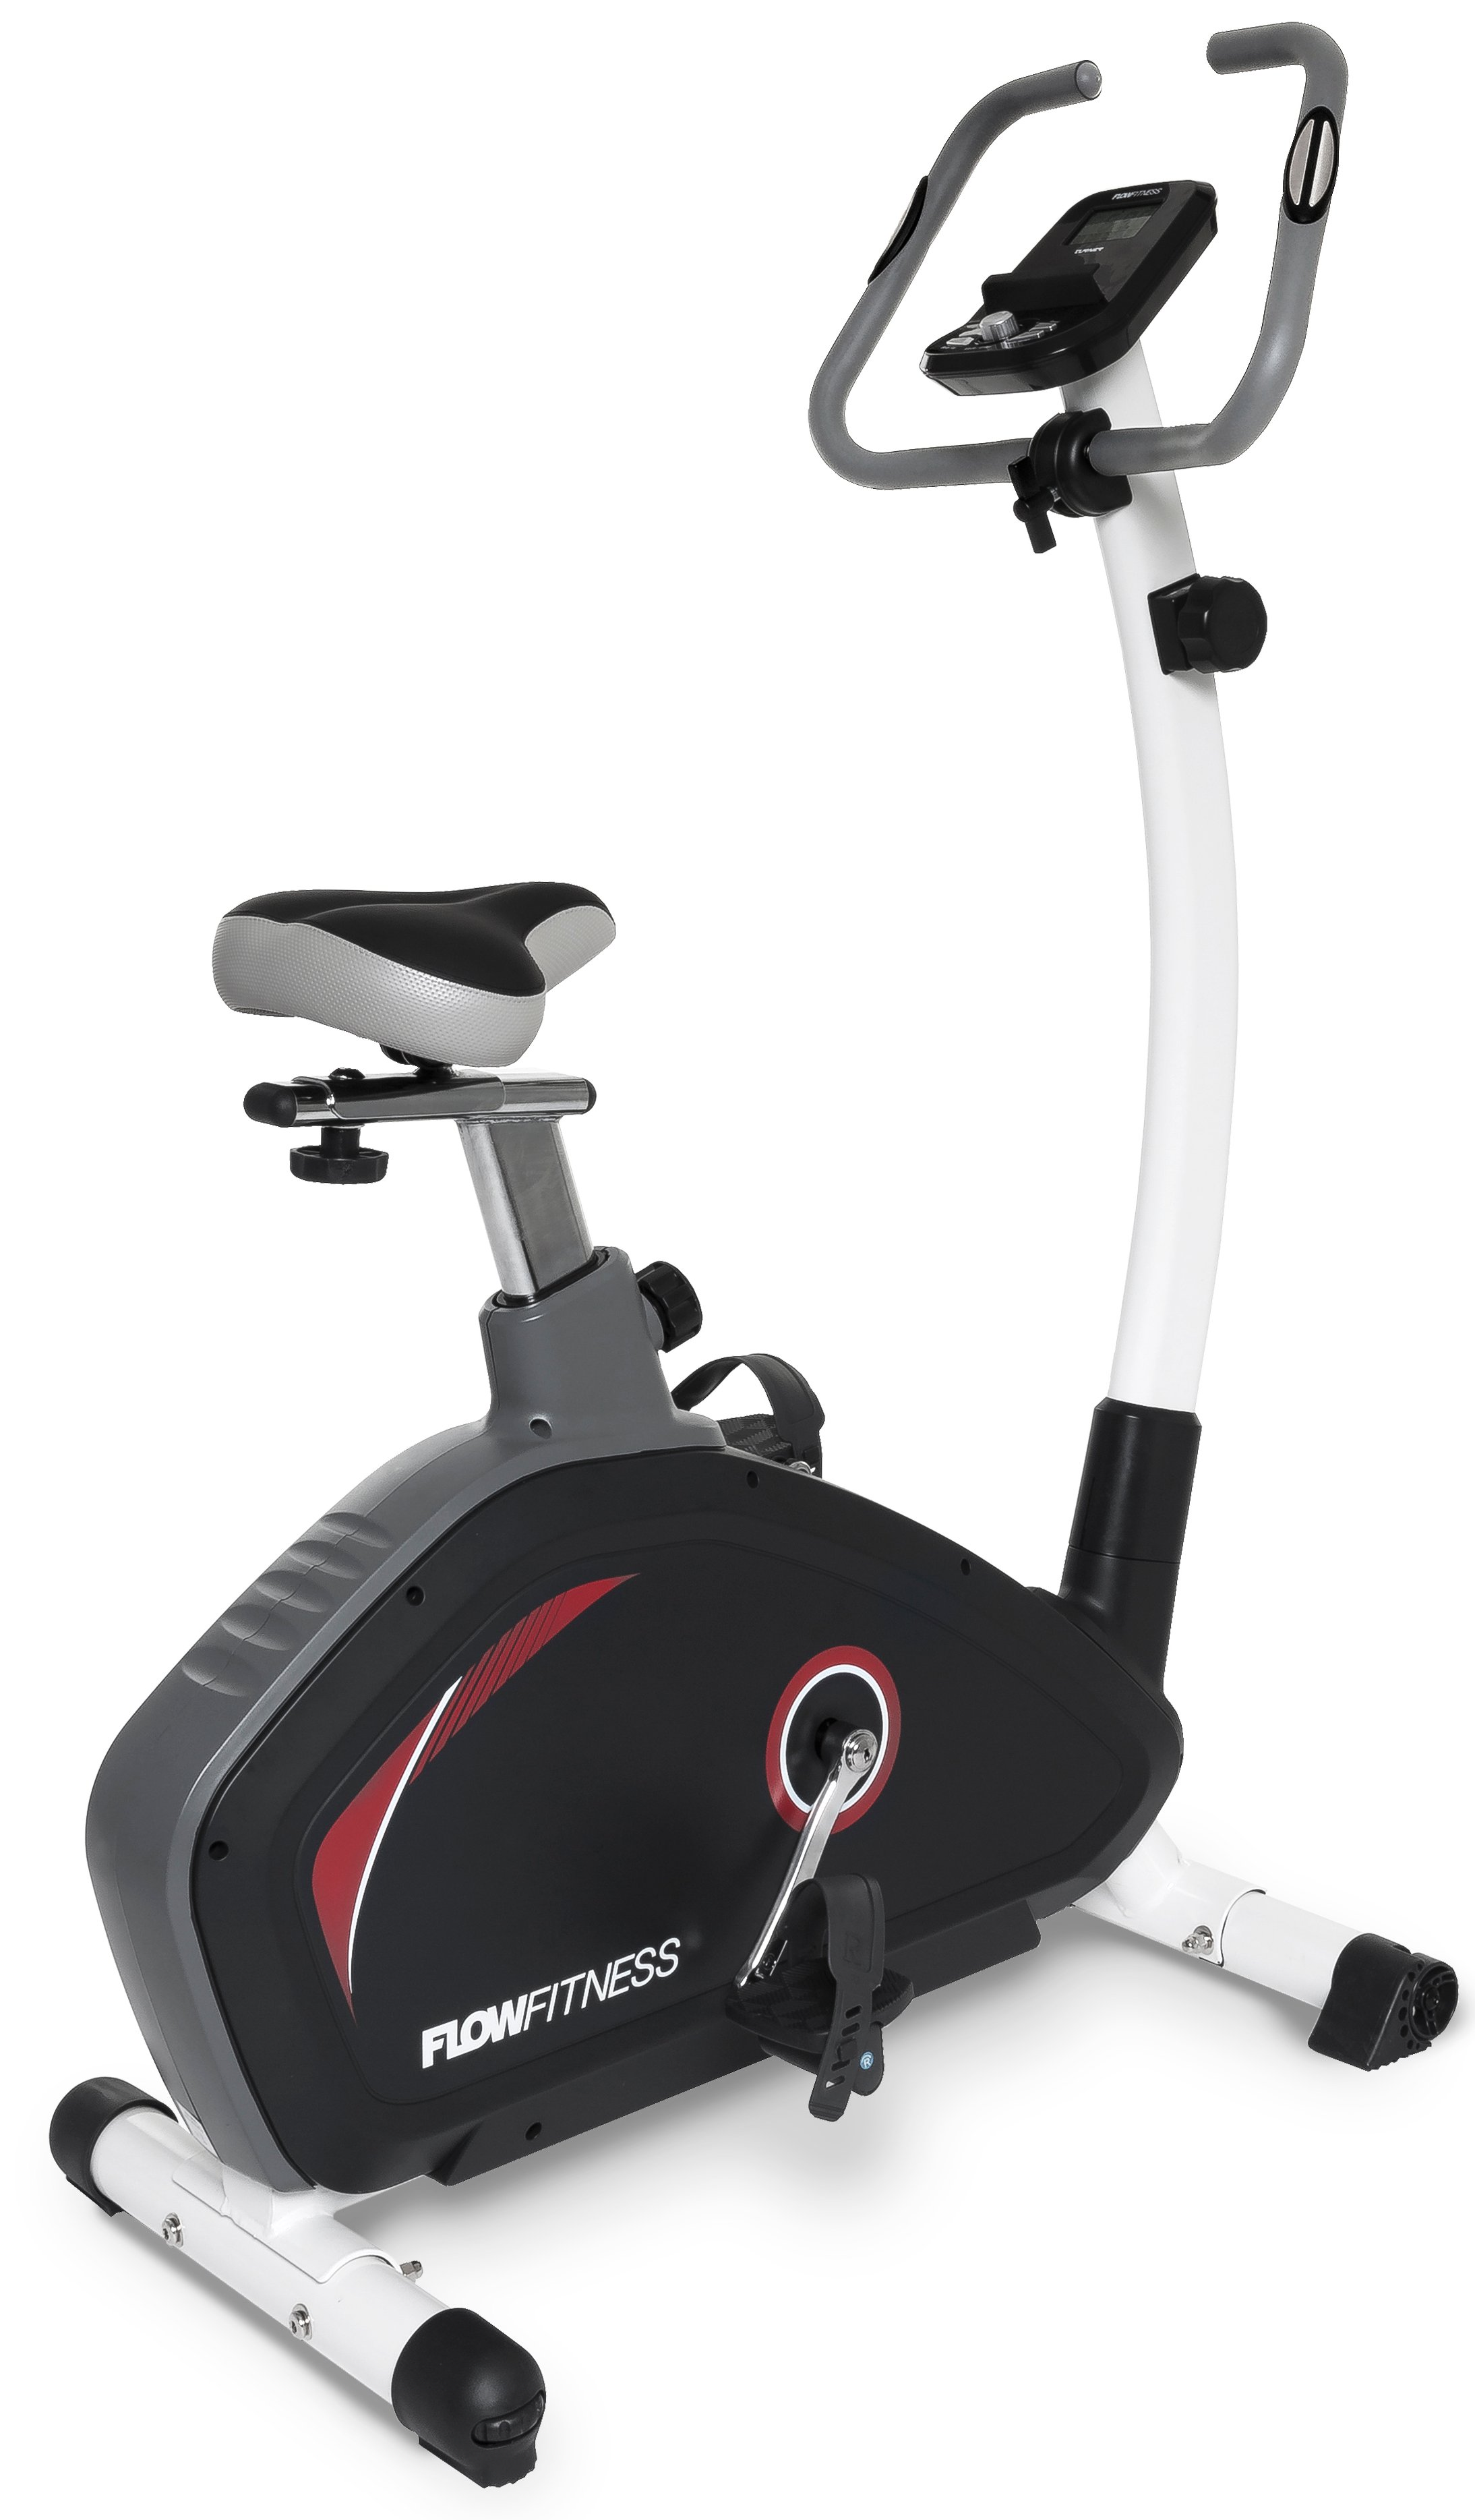 Image of Flow Fitness Gymnast DHT125 exercise bike